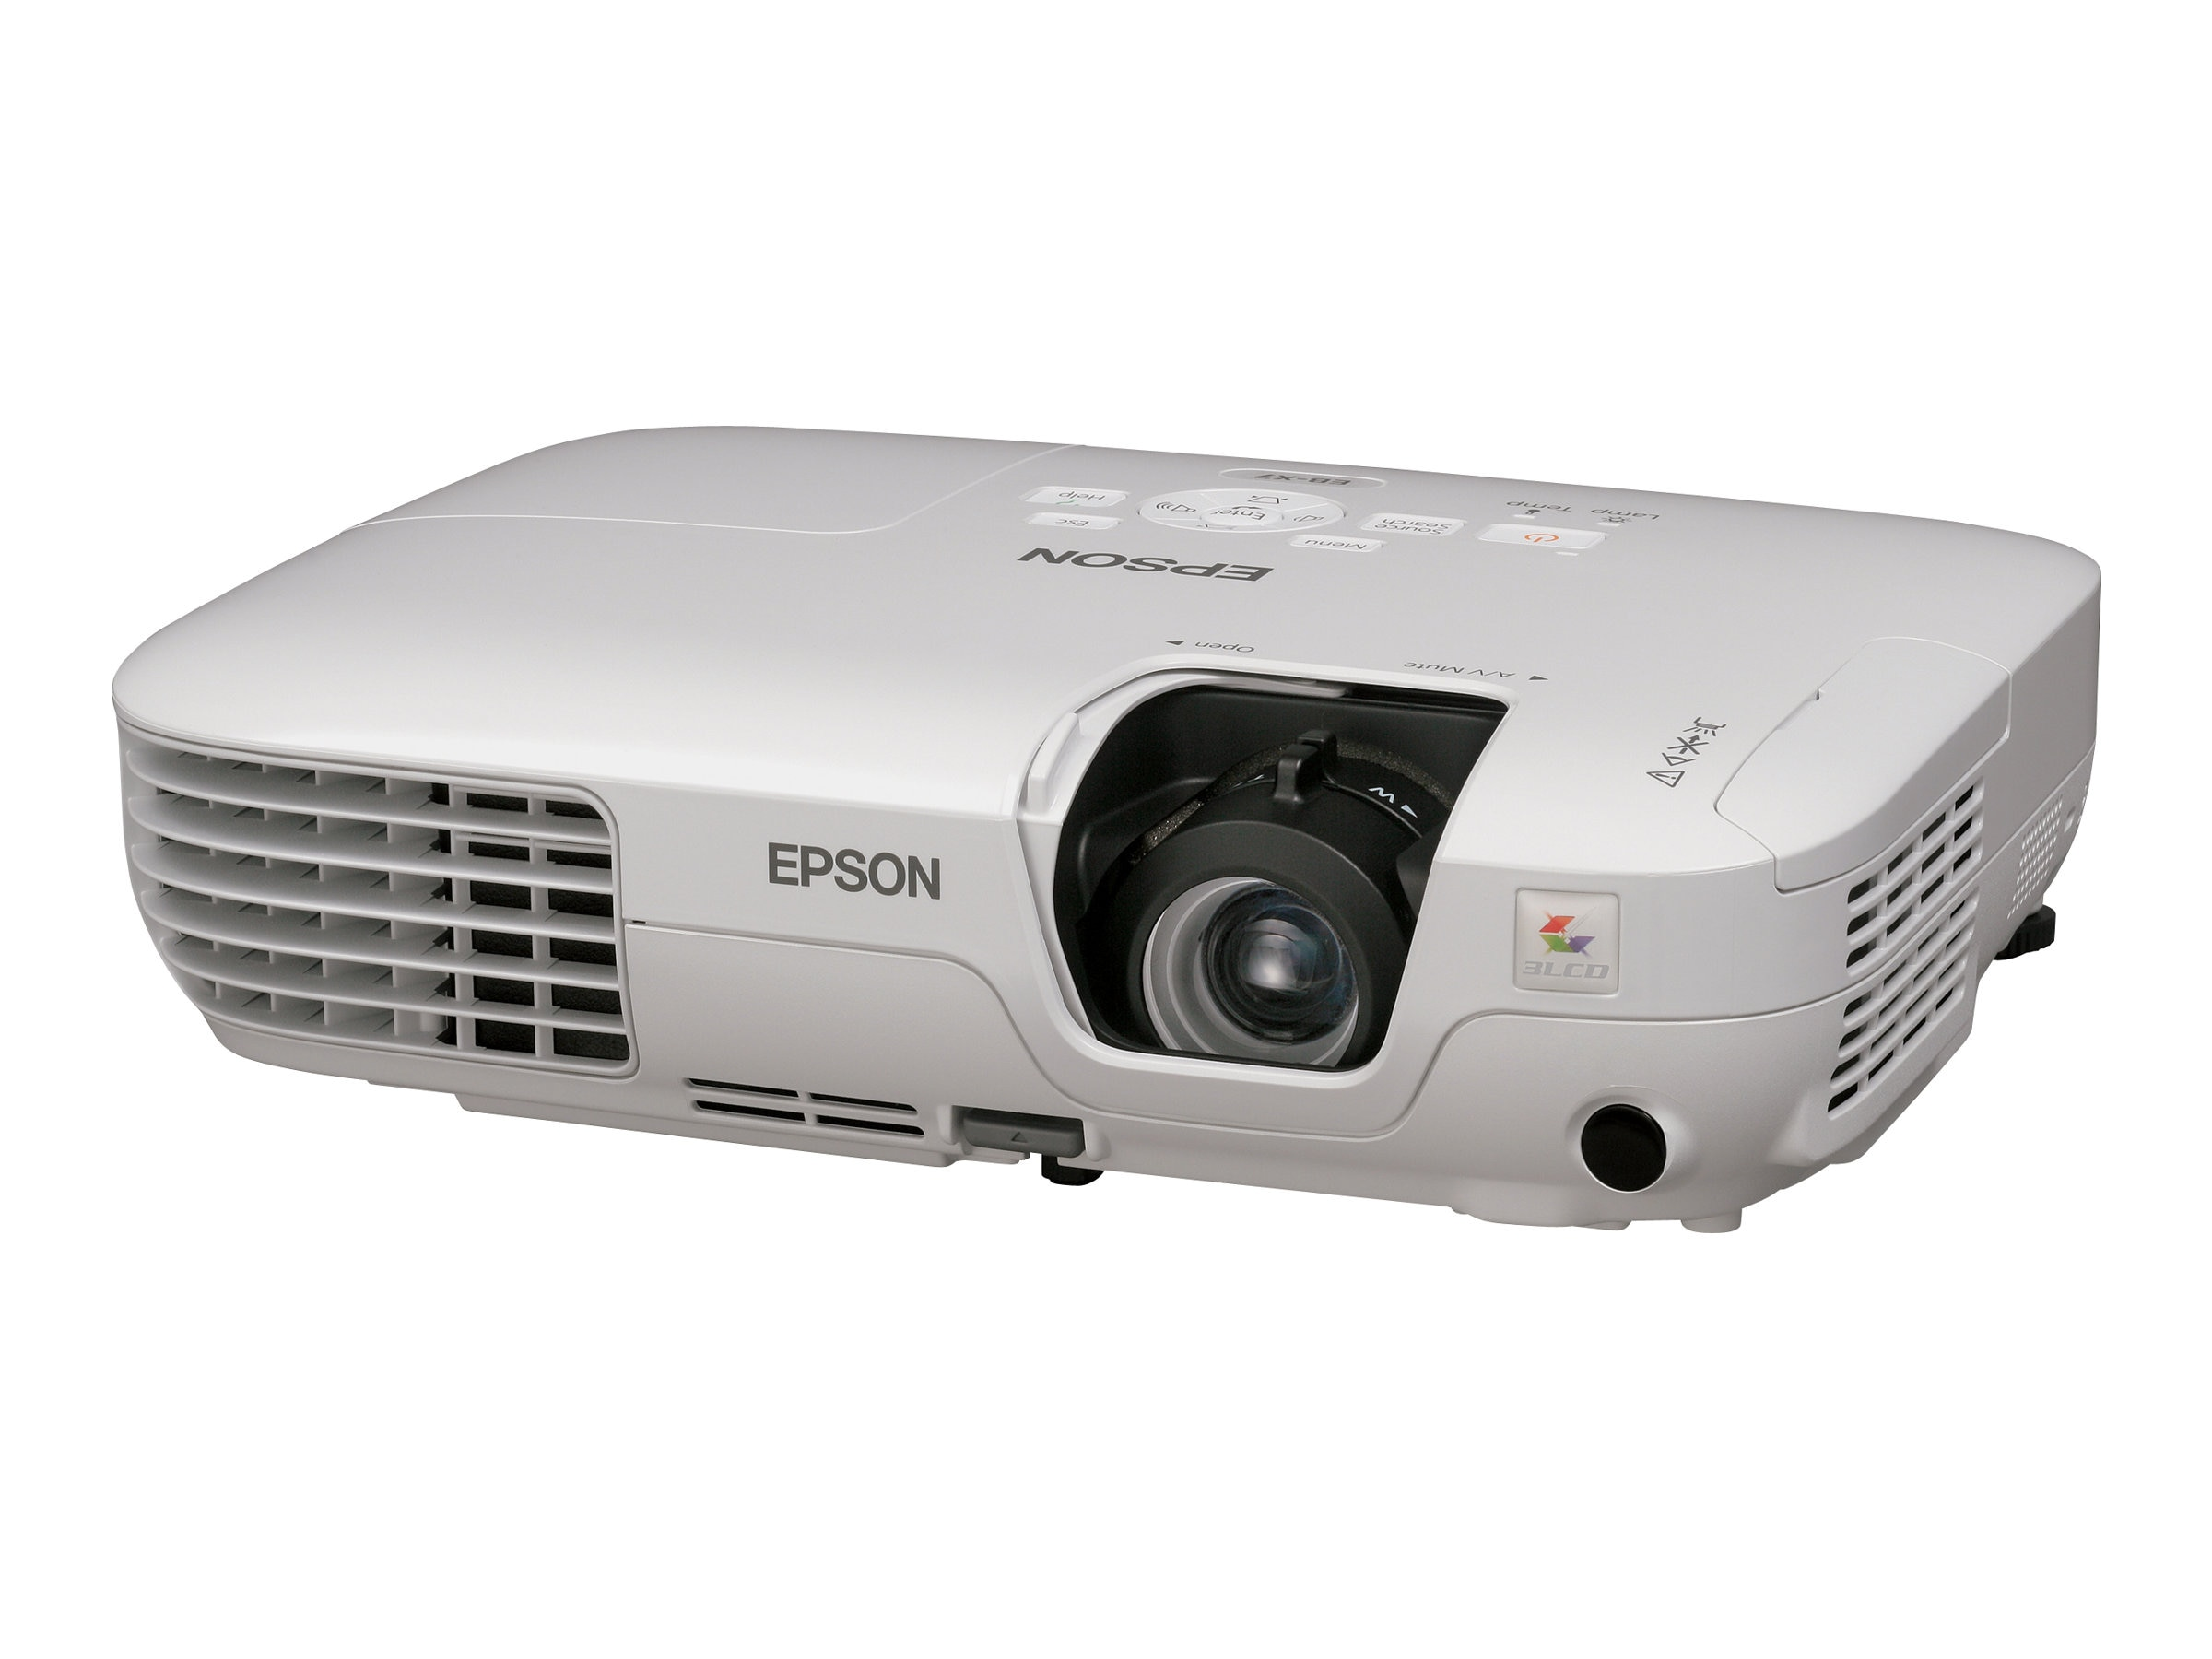 Epson Replacement Lamp for Epson Projectors, V13H010L54